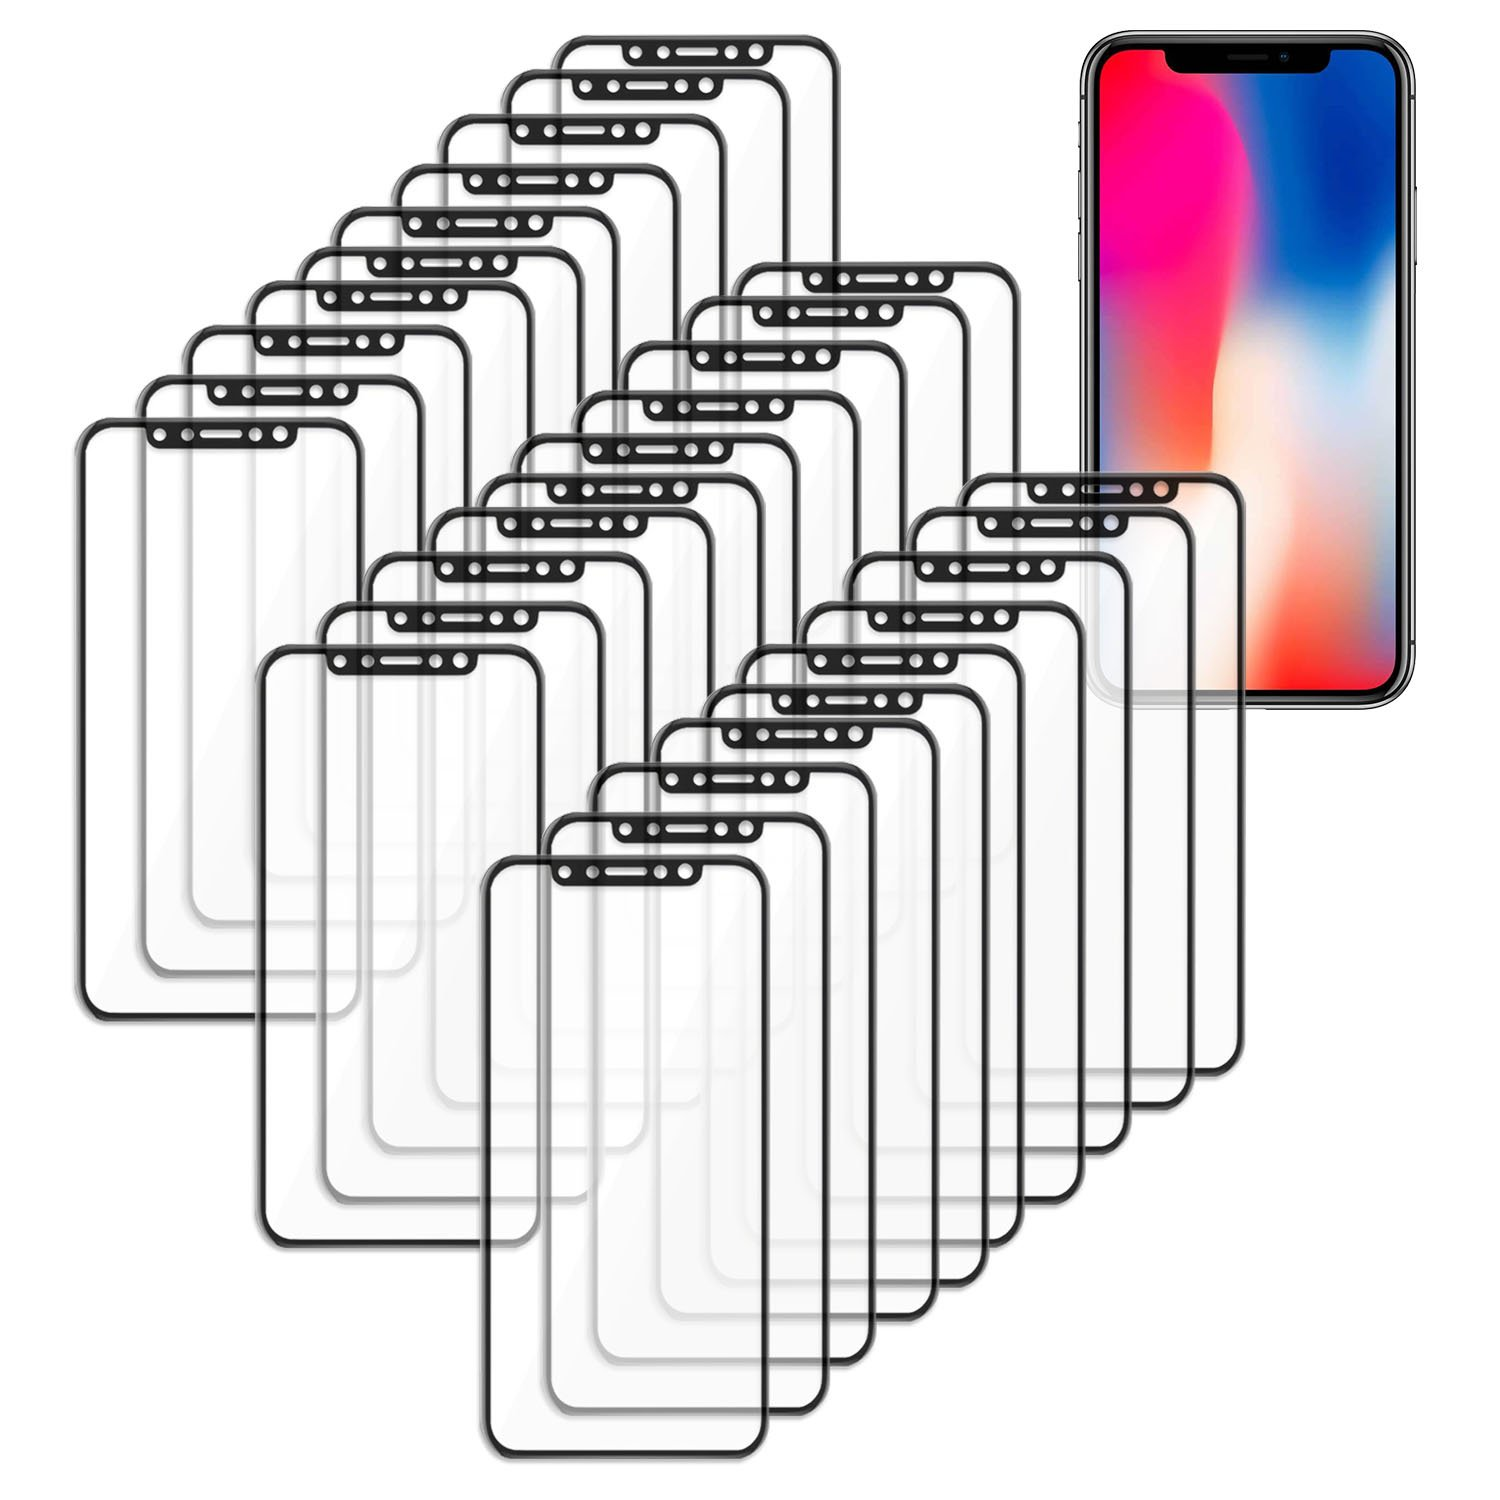 [30 Pack] SOJITEK iPhone X Black Color Screen Protector, 3D Ballistic Tempered Glass Full Curved Edge Screen Cover with Liftime Replacement Warranty- HD High Definition, Scratch-Resistant, Anti-Smudge